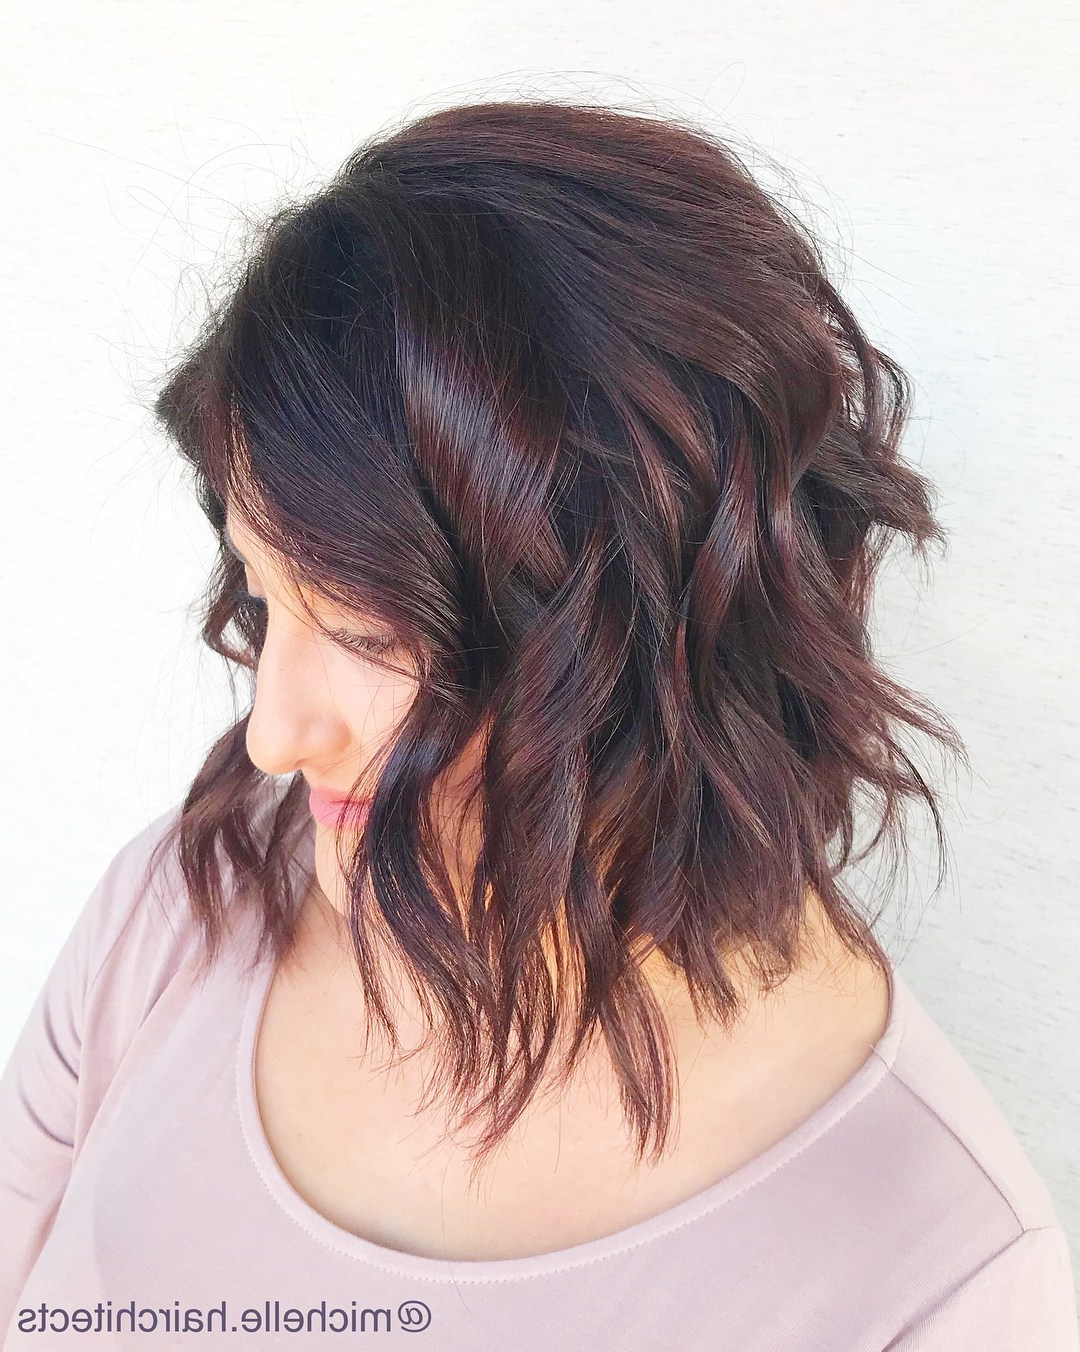 50 Hairstyles For Thick Wavy Hair You Will Adore – Hair For Most Up To Date Curly Bronde Haircuts With Choppy Ends (Gallery 5 of 20)